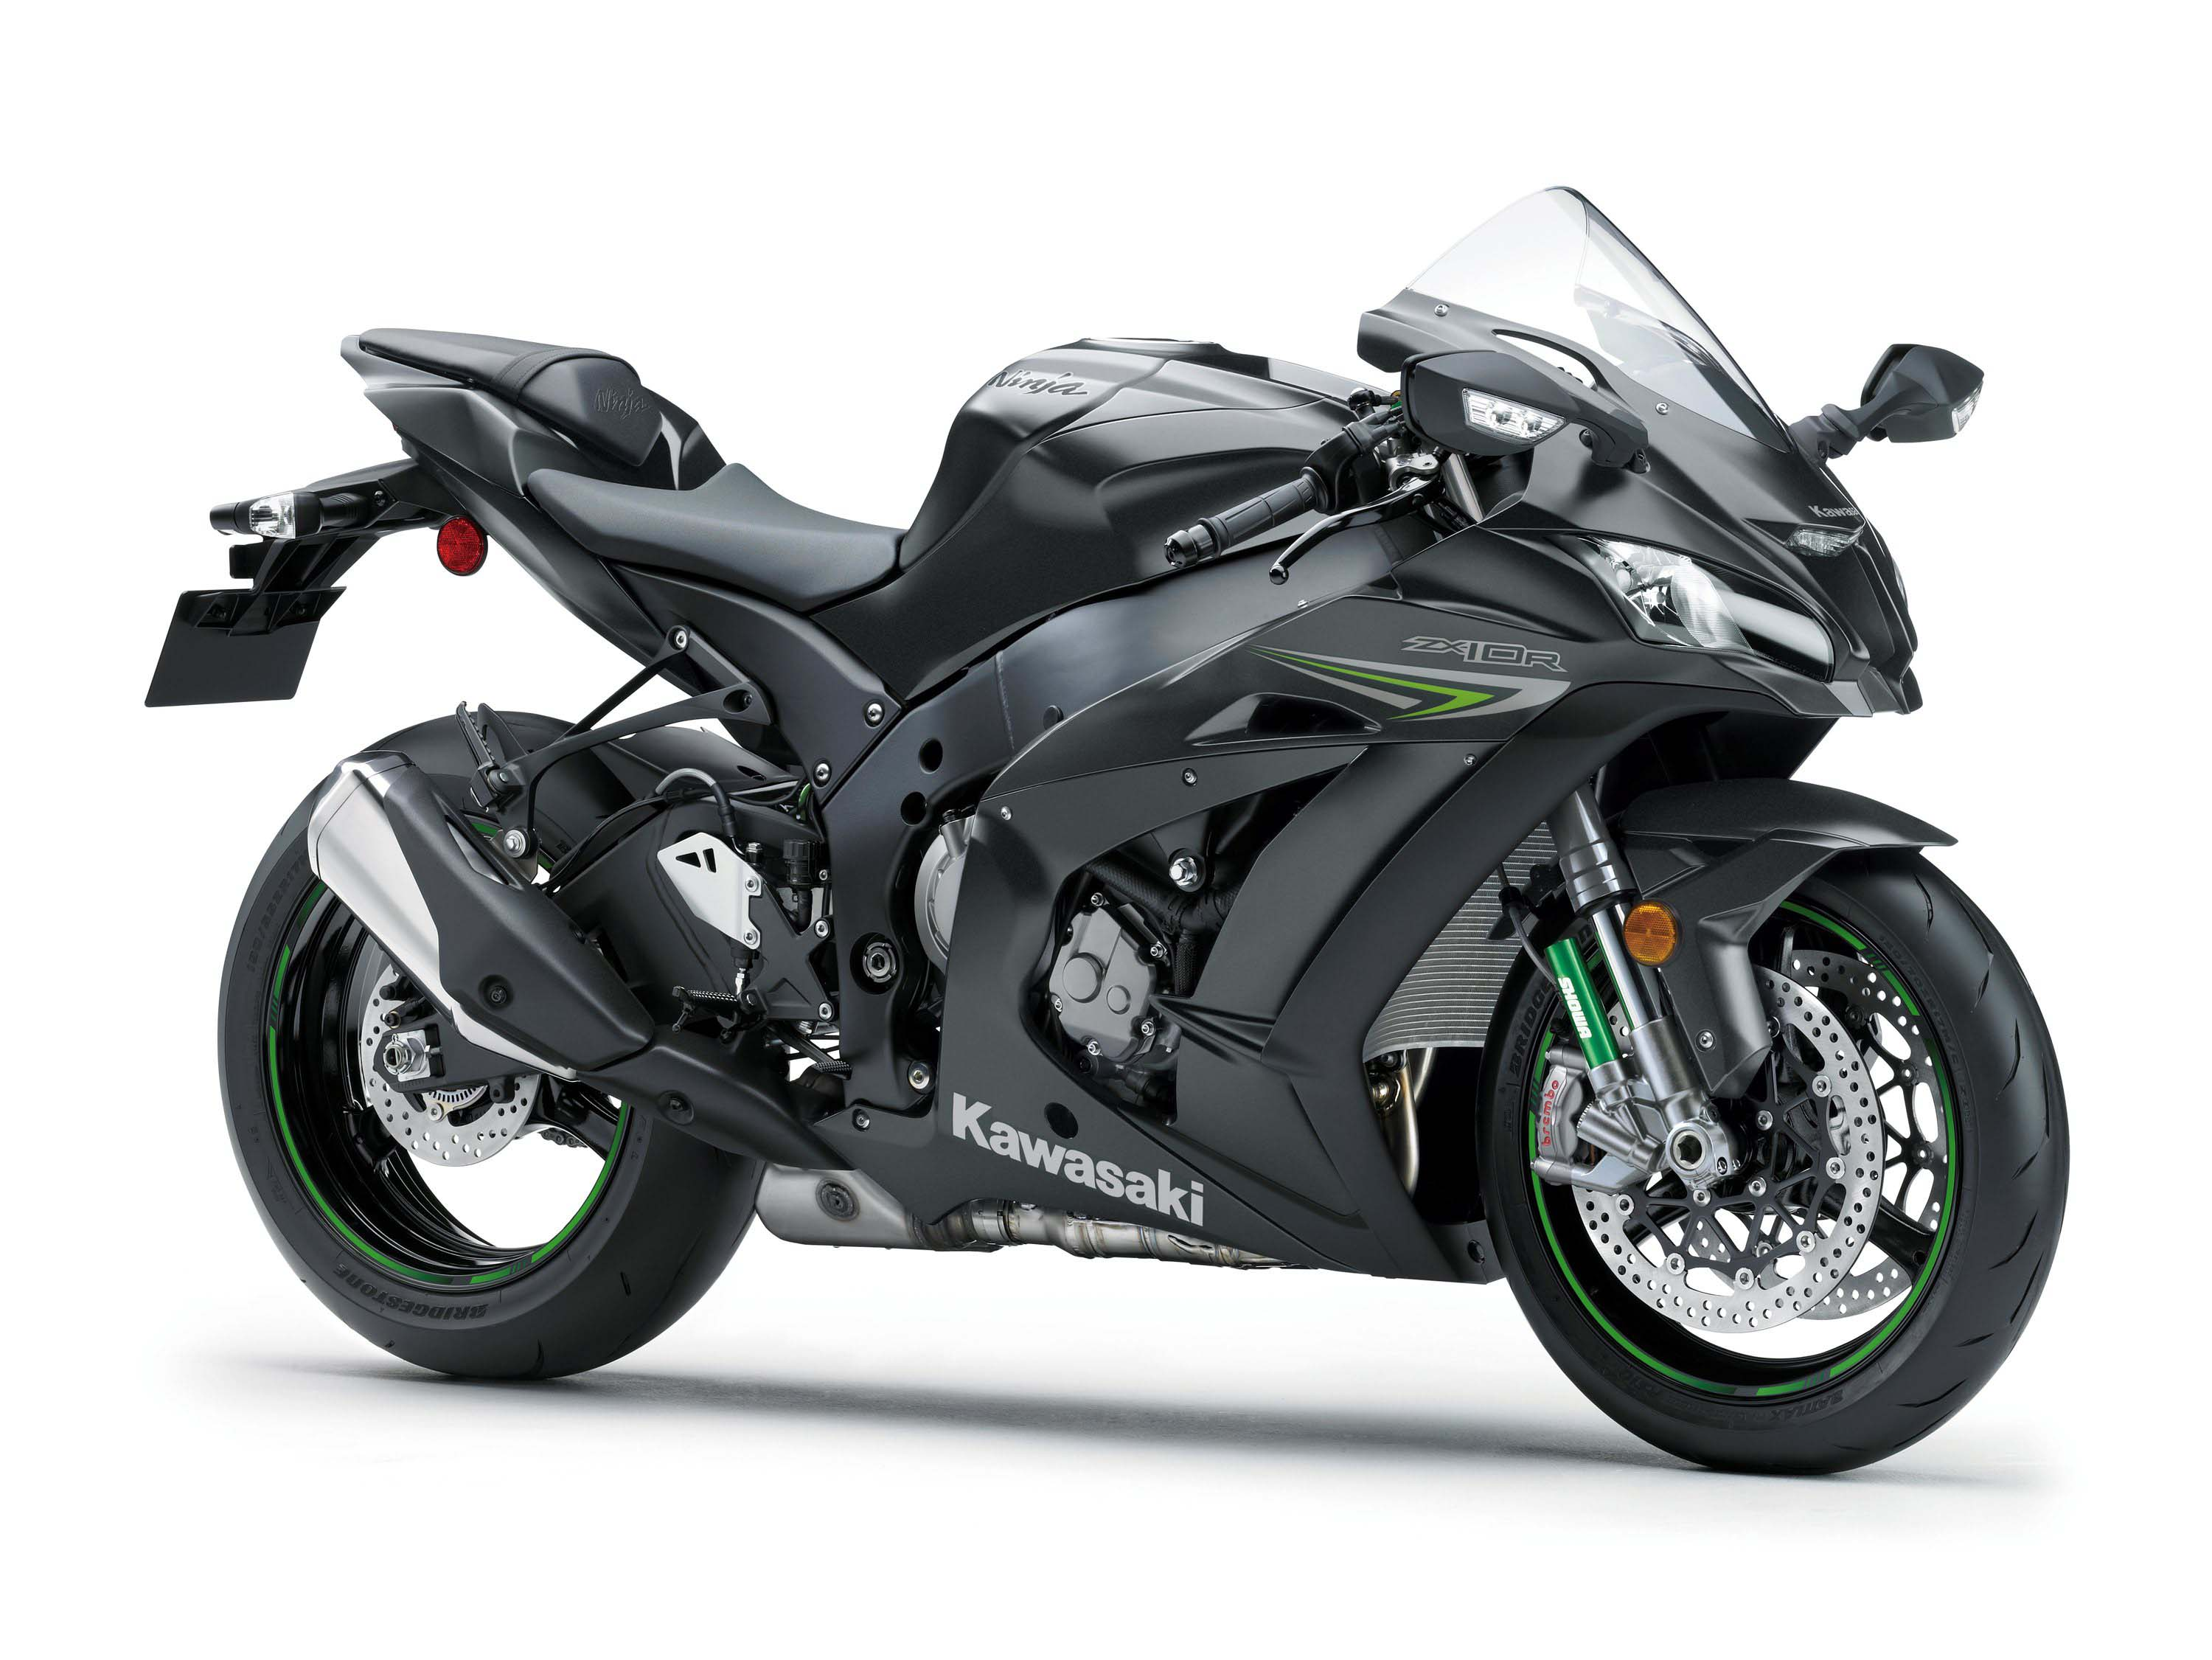 390 Duke in addition 2017 Ninja Zx10r Wallpapers furthermore 2016 Kawasaki Ninja Zx 10r additionally Can The New 2018 Suzuki Gsx250r  pete In The Burgeoning Small Displacement Category also Ducati 1199 Panigale Streetfighter Hertr f. on benelli 250 white